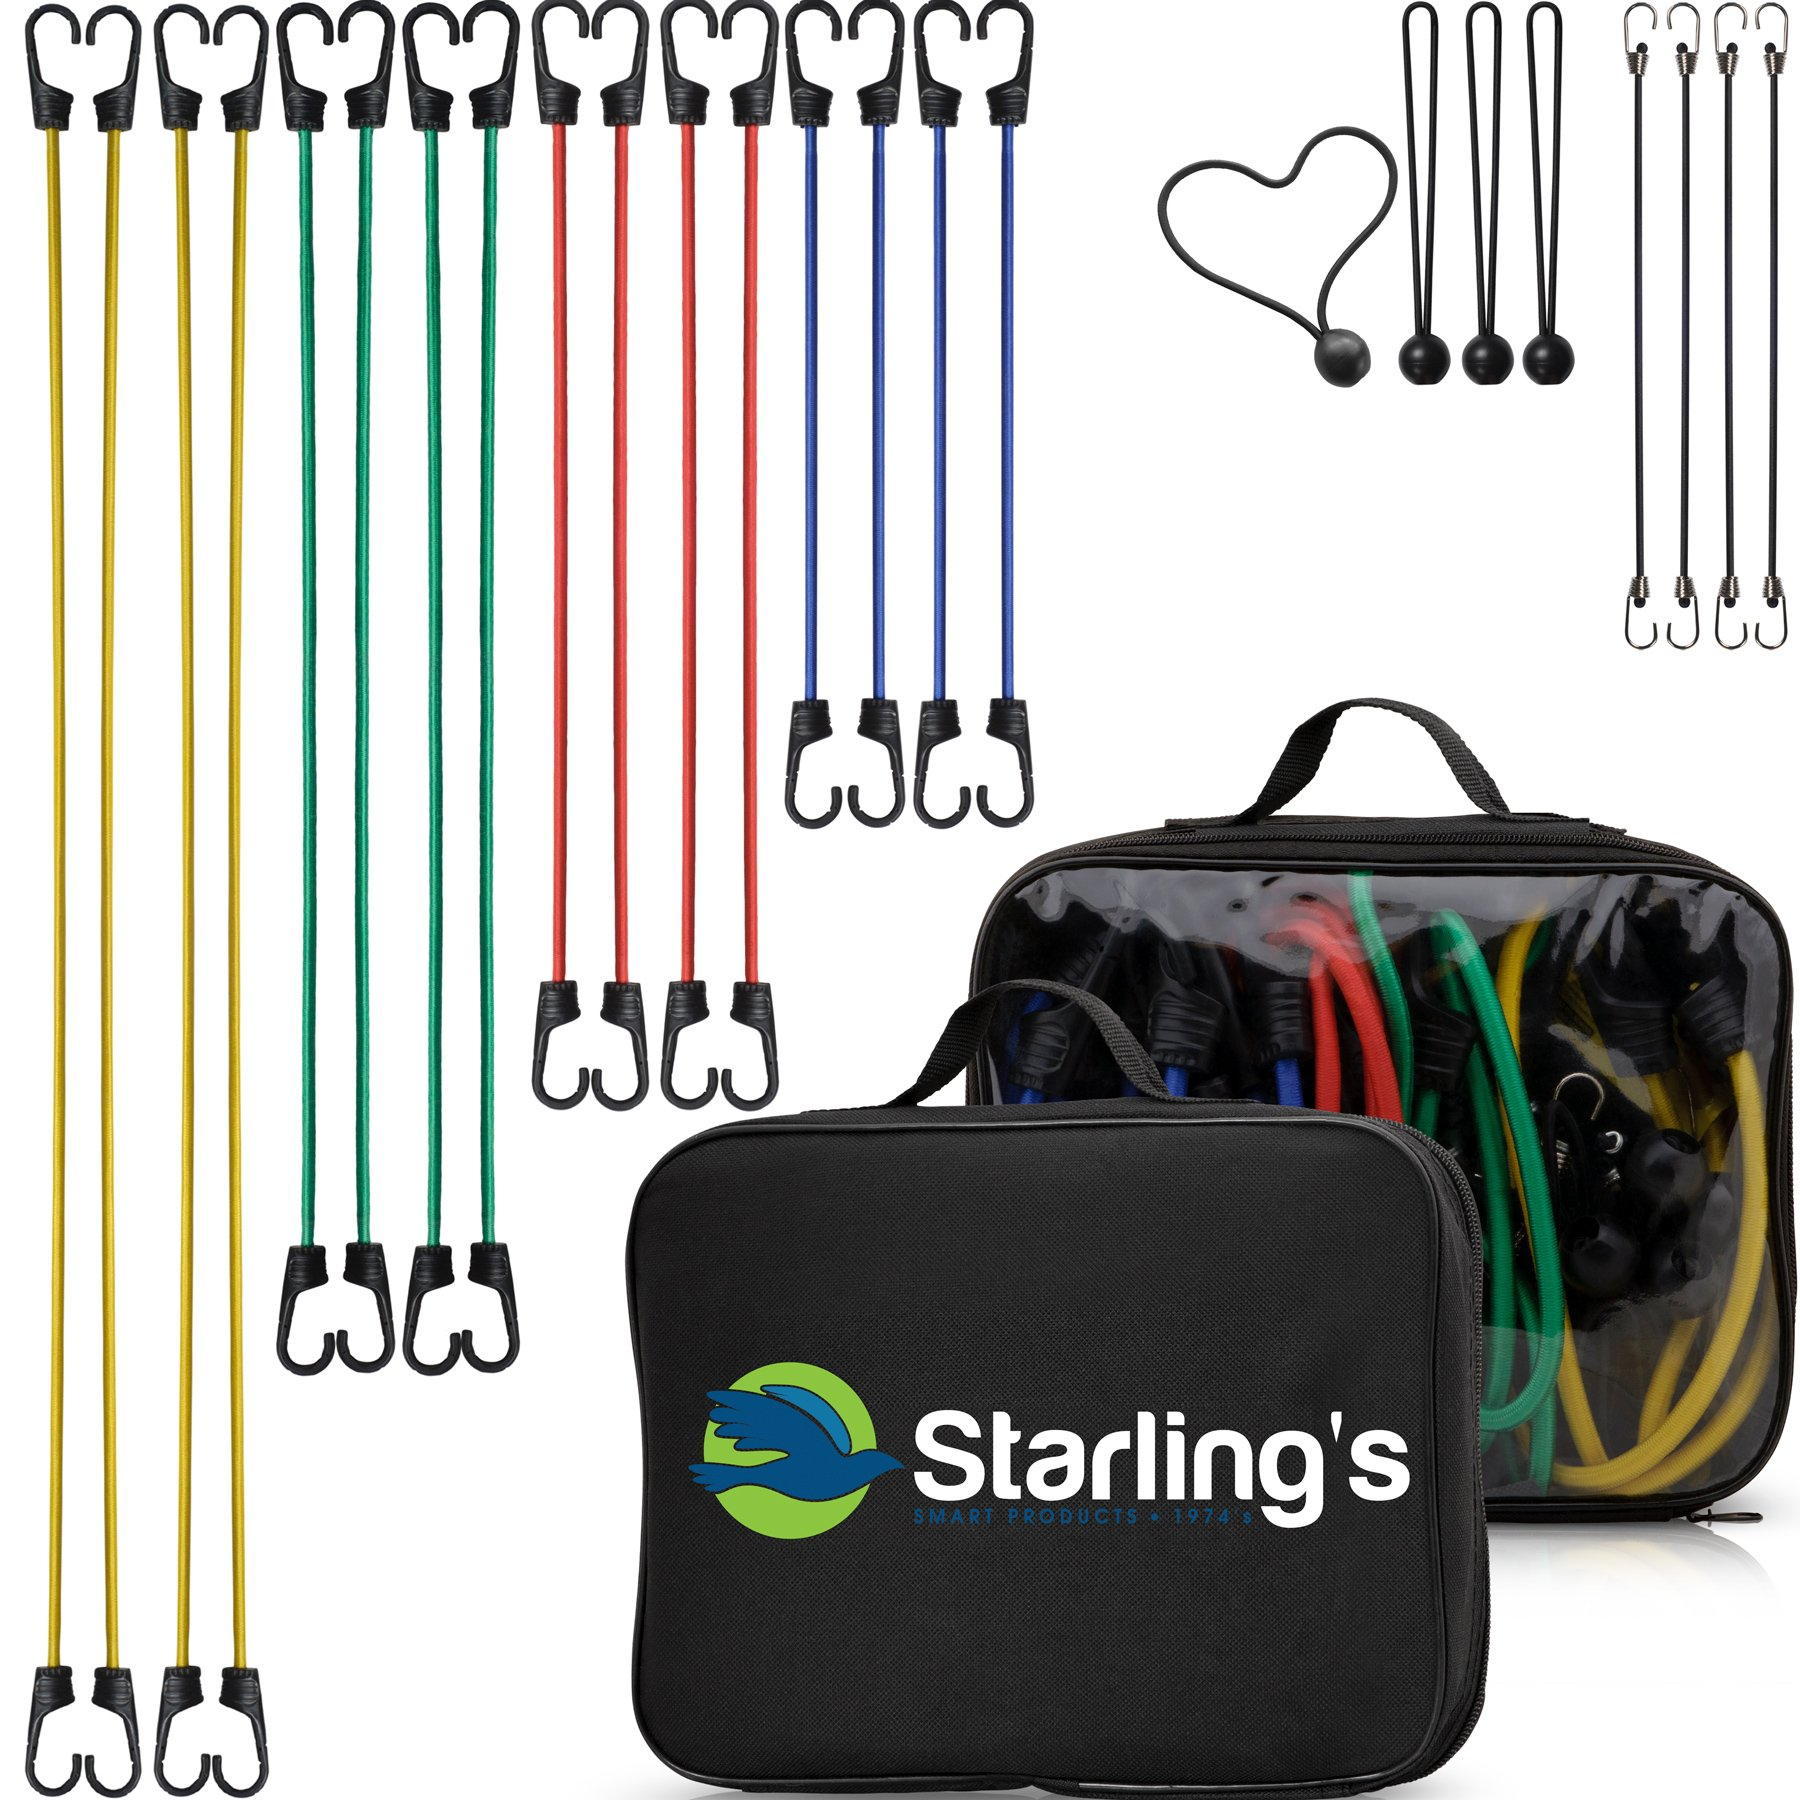 Bungee Cord Tie Down Straps Assortment (Set of 24 Cords) W/Carrying Case by Starling's|100% Latex- Elastic, Heavy Duty Pull Ropes for Motorcycle, Truck, Car, Trailer, Camper |W/Bungee Ball-Canopy Tie